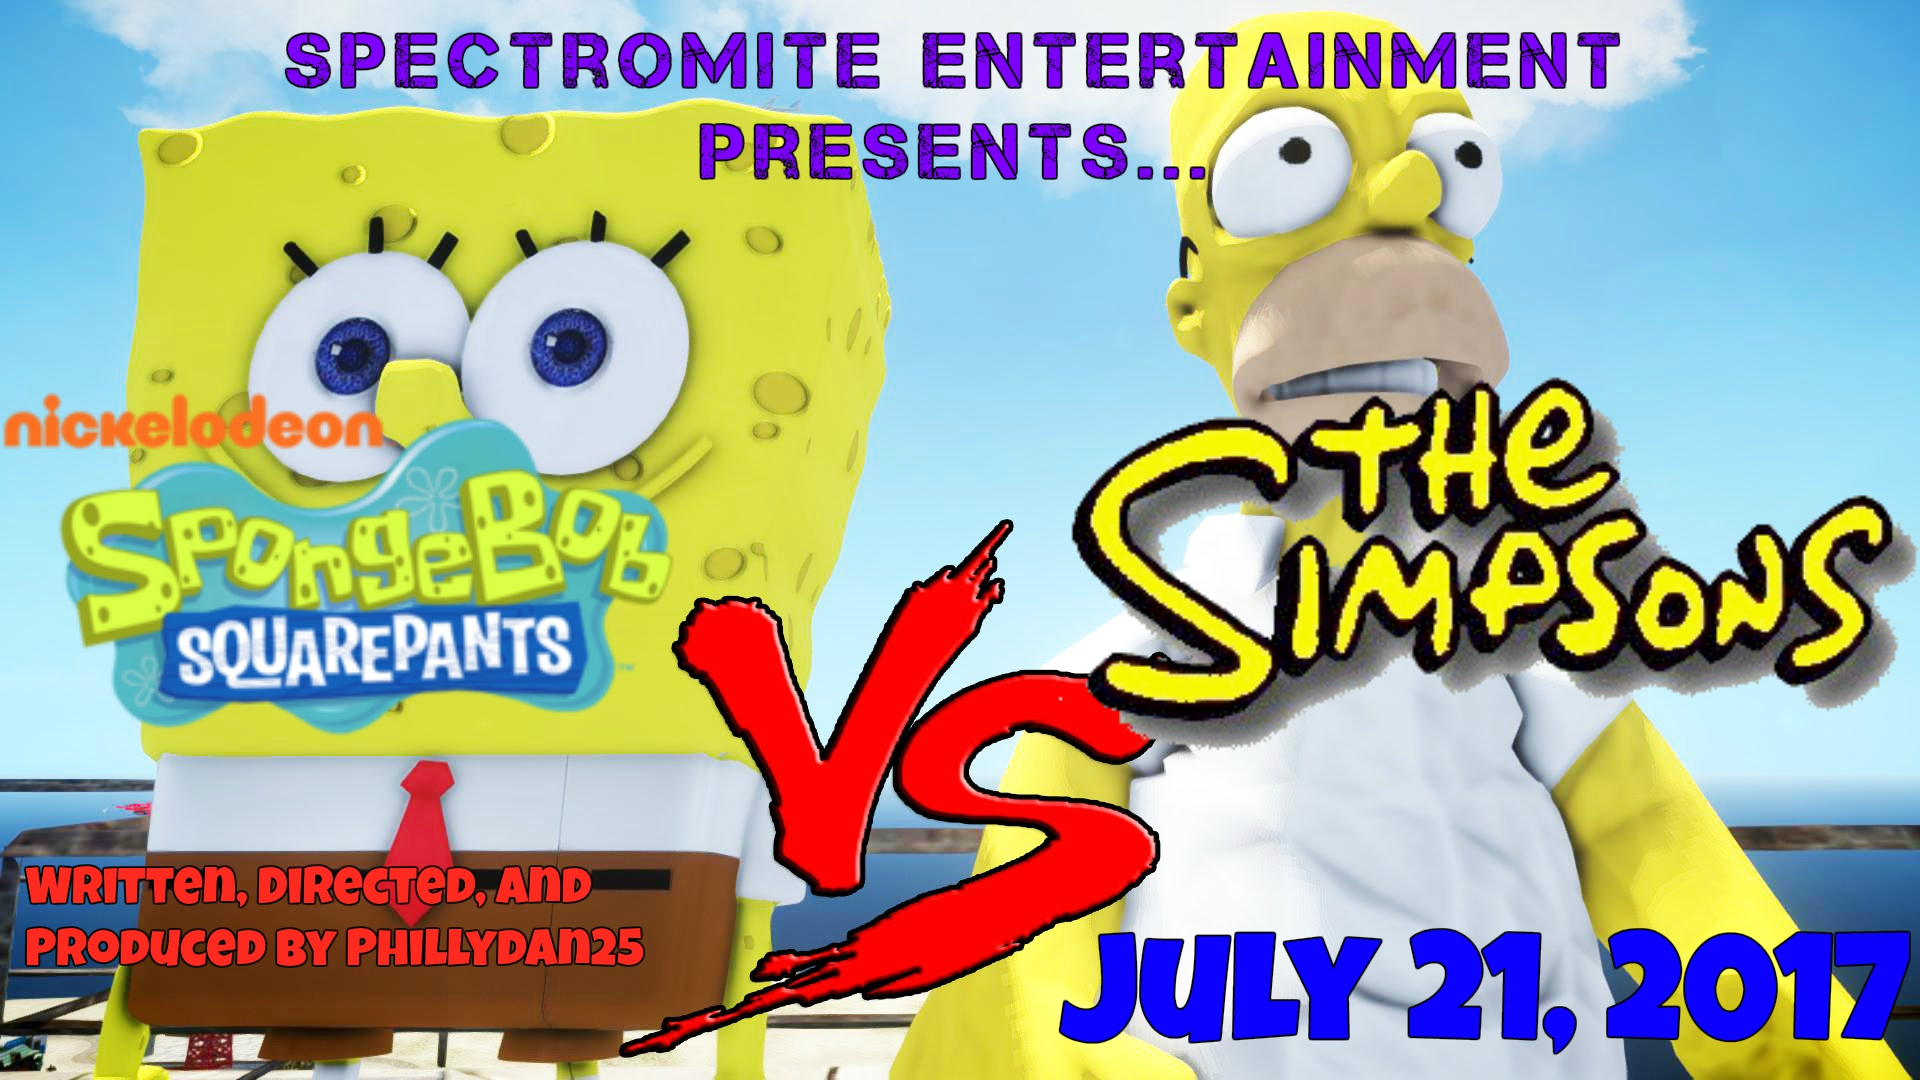 The Simpsons vs. SpongeBob SquarePants